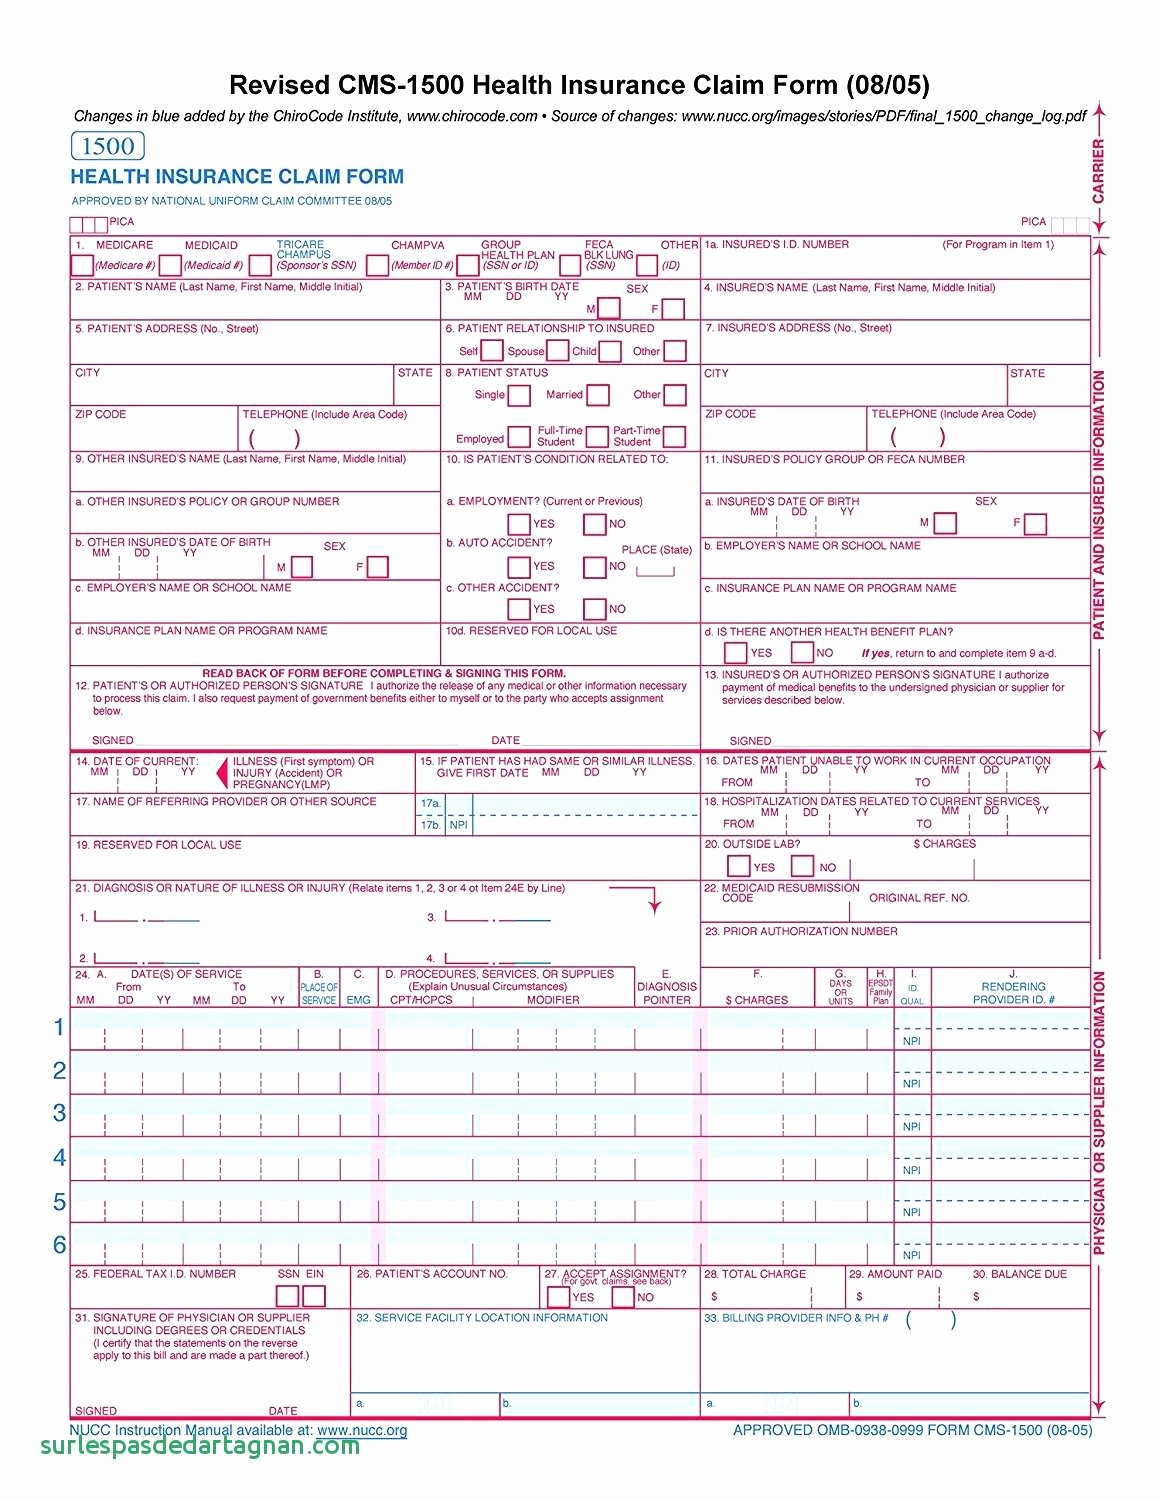 Cms 1500 Claim Form Template New Hcfa Forms Lovely Top Result Free Cms 1500 Claim Form Template Best